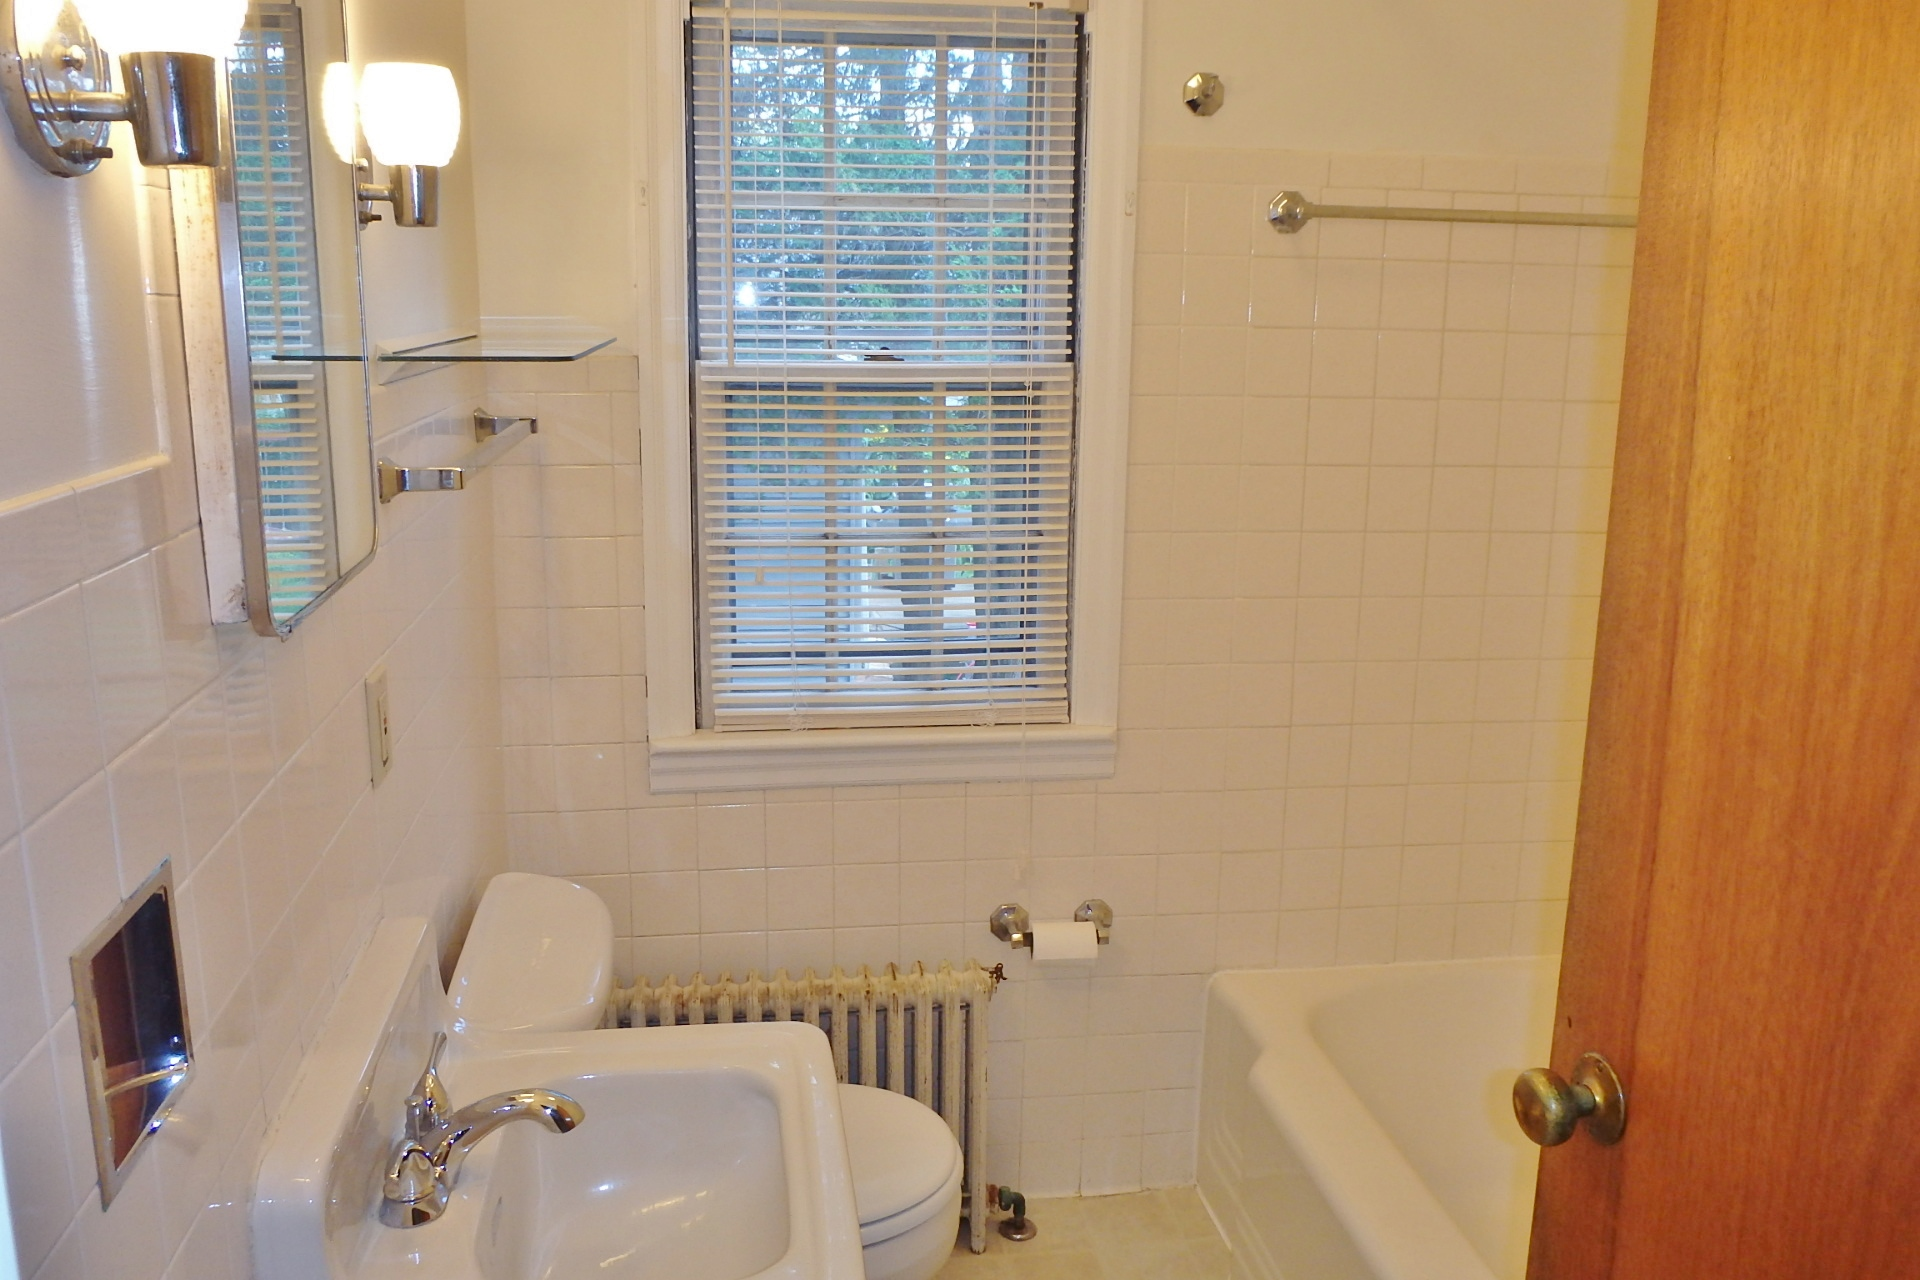 Bathroom photo of the 2-bedroom apartment for rent at 404 W. Fairmount Avenue, State College PA.